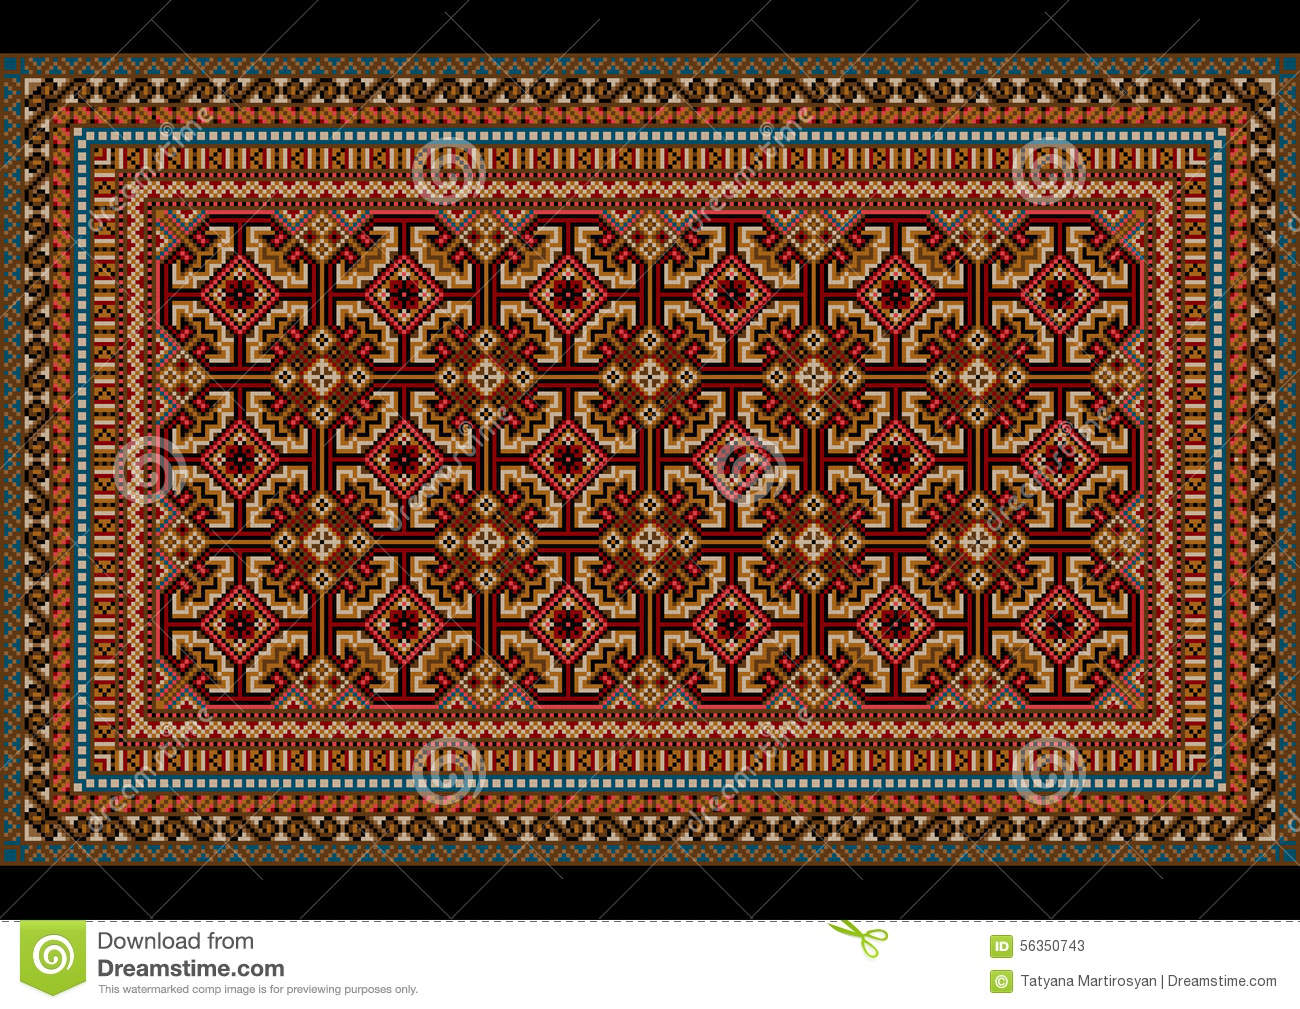 Old carpet carpet vidalondon for Alfombras griegas